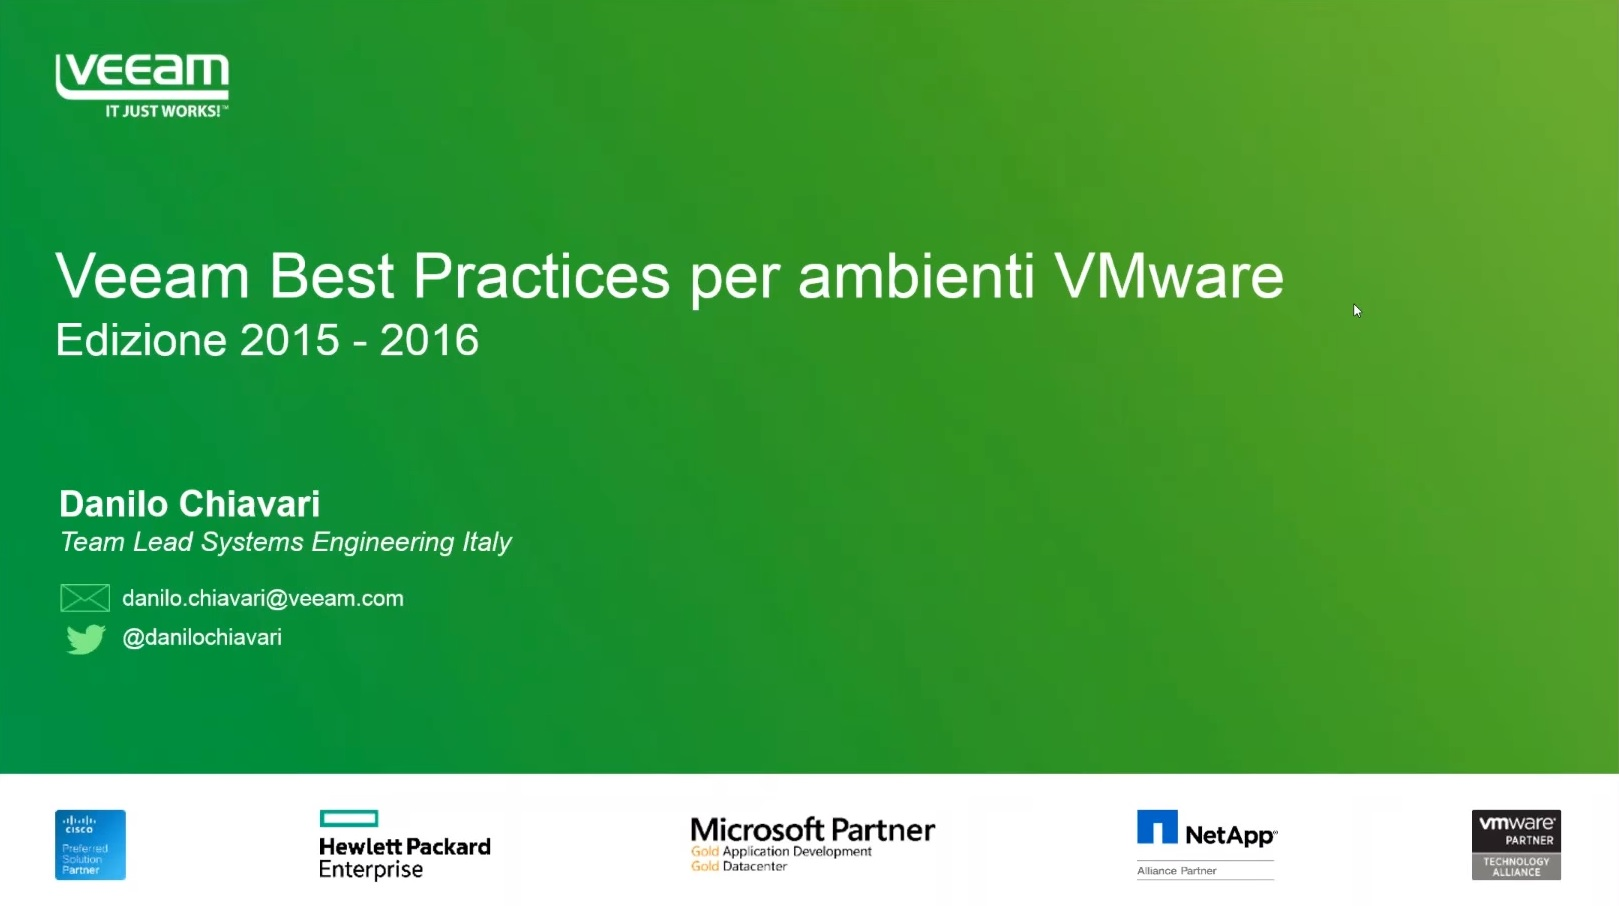 Veeam Best Practices per ambienti VMware, 2015-2016